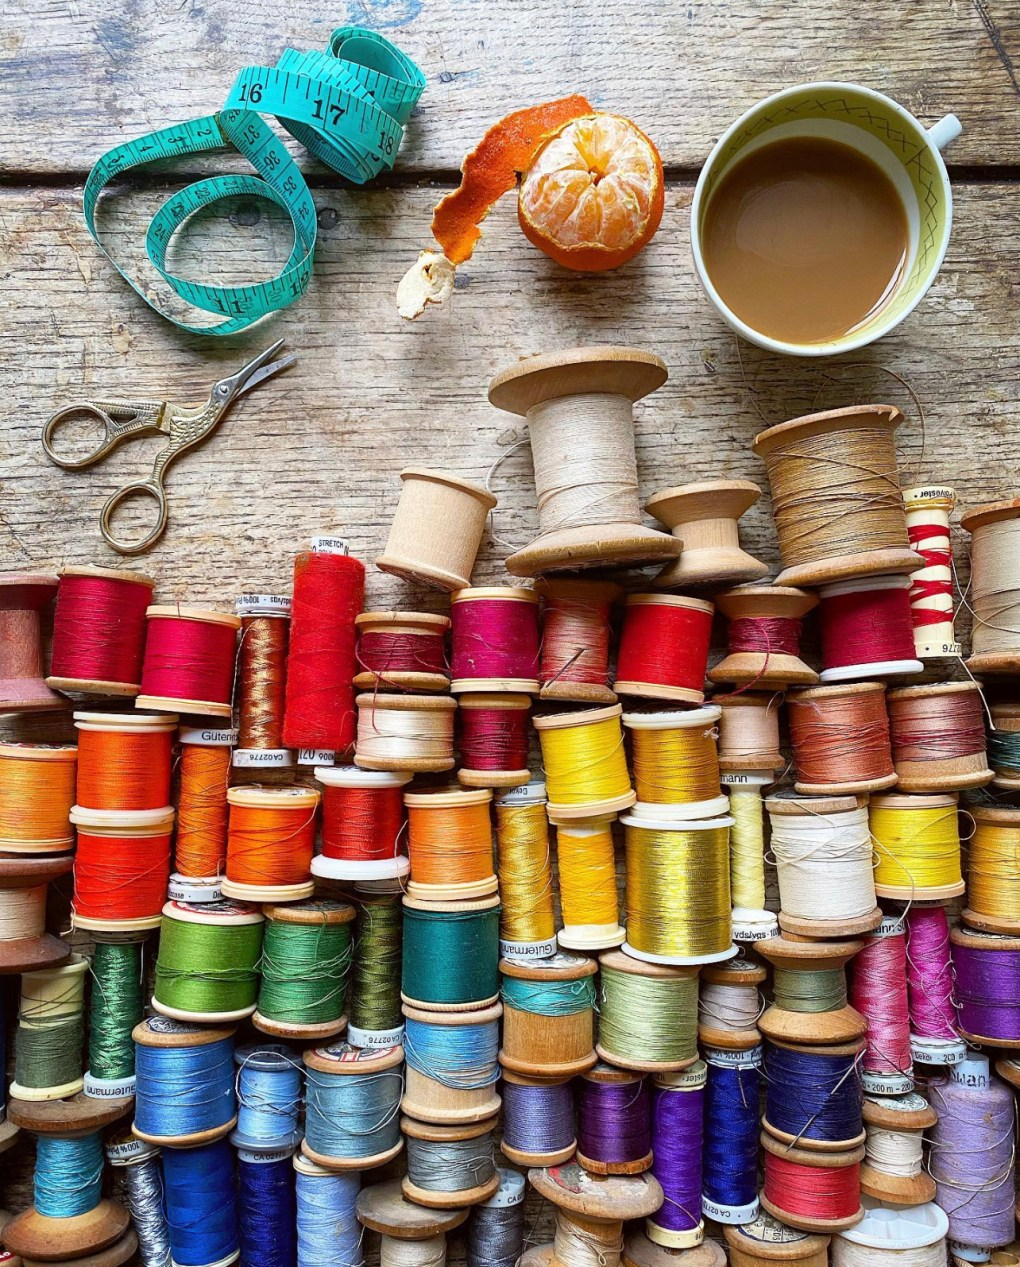 Philippa's vast collection of colourful cotton reels, which have been turned into a jigsaw puzzle.